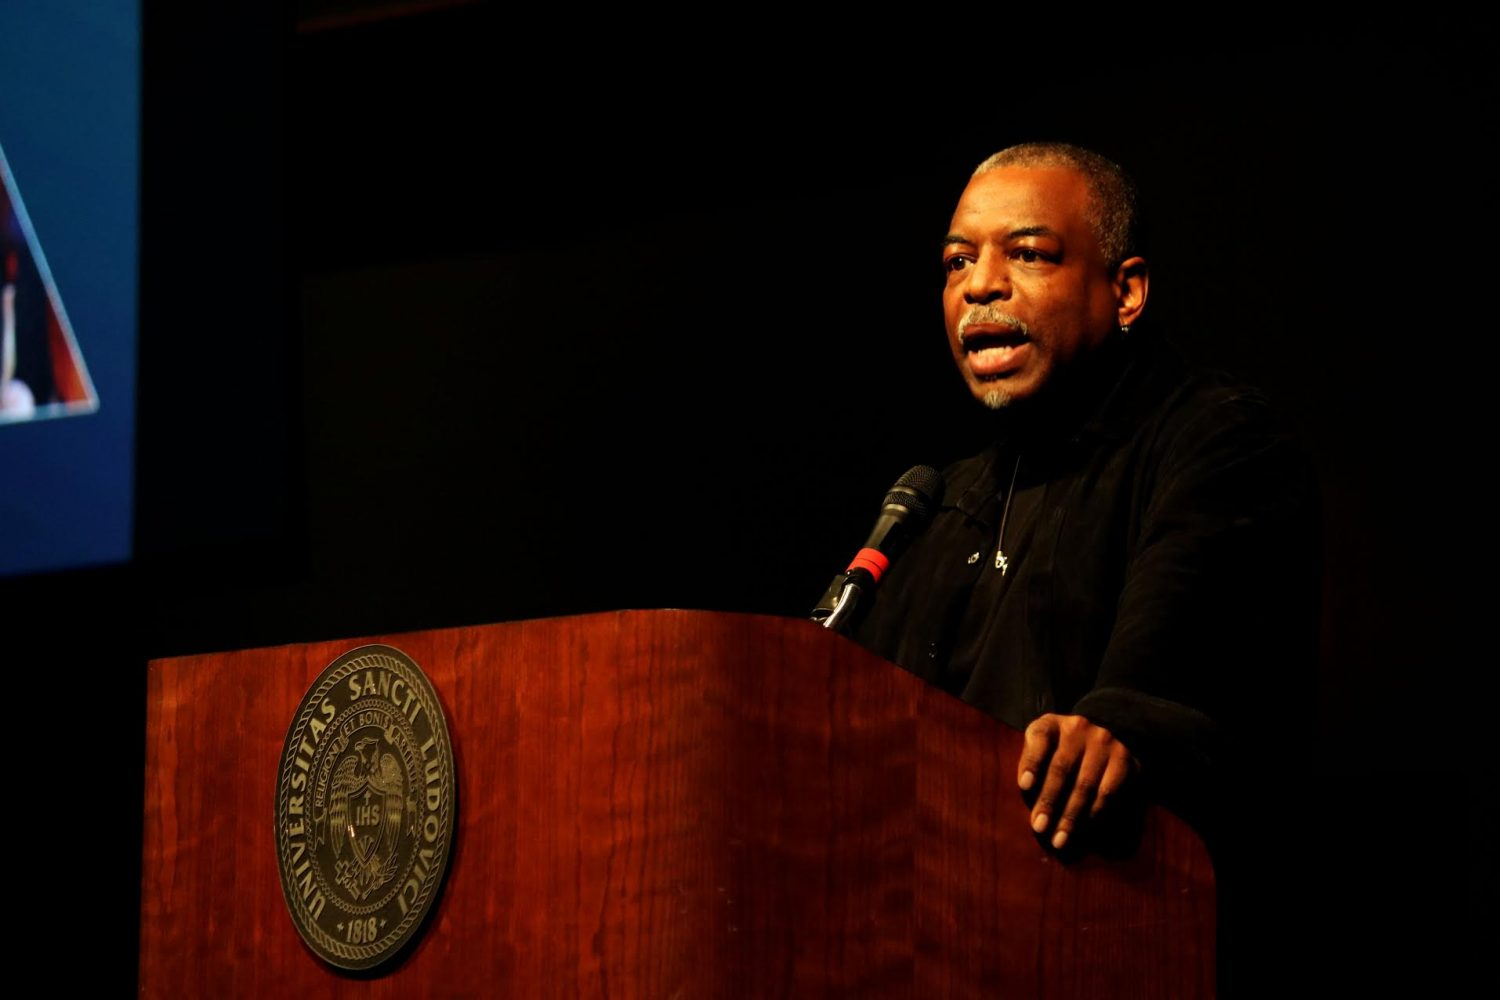 LeVar+Burton%2C+host+of+Reading+Rainbow%2C+speaks+to+students+about+importance+of+literacy